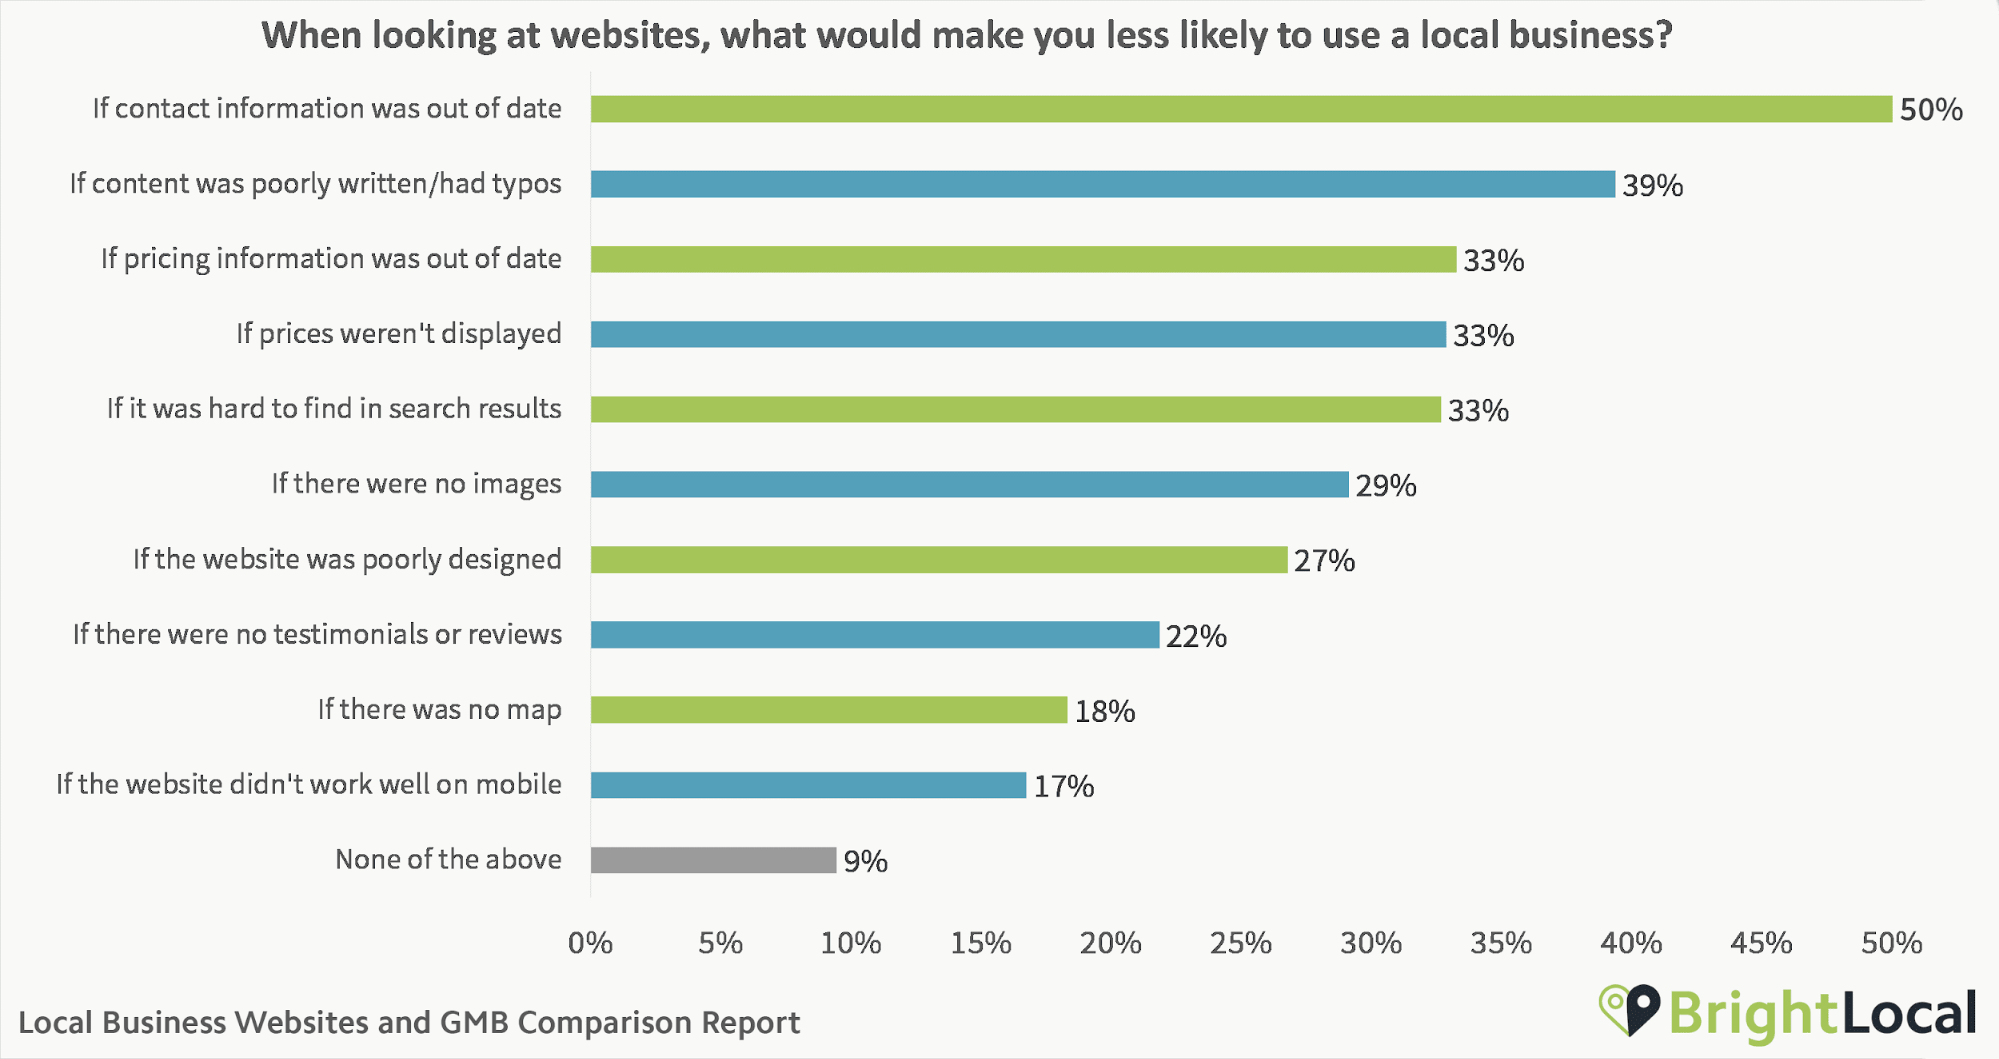 What would make you less likely to use a local business?